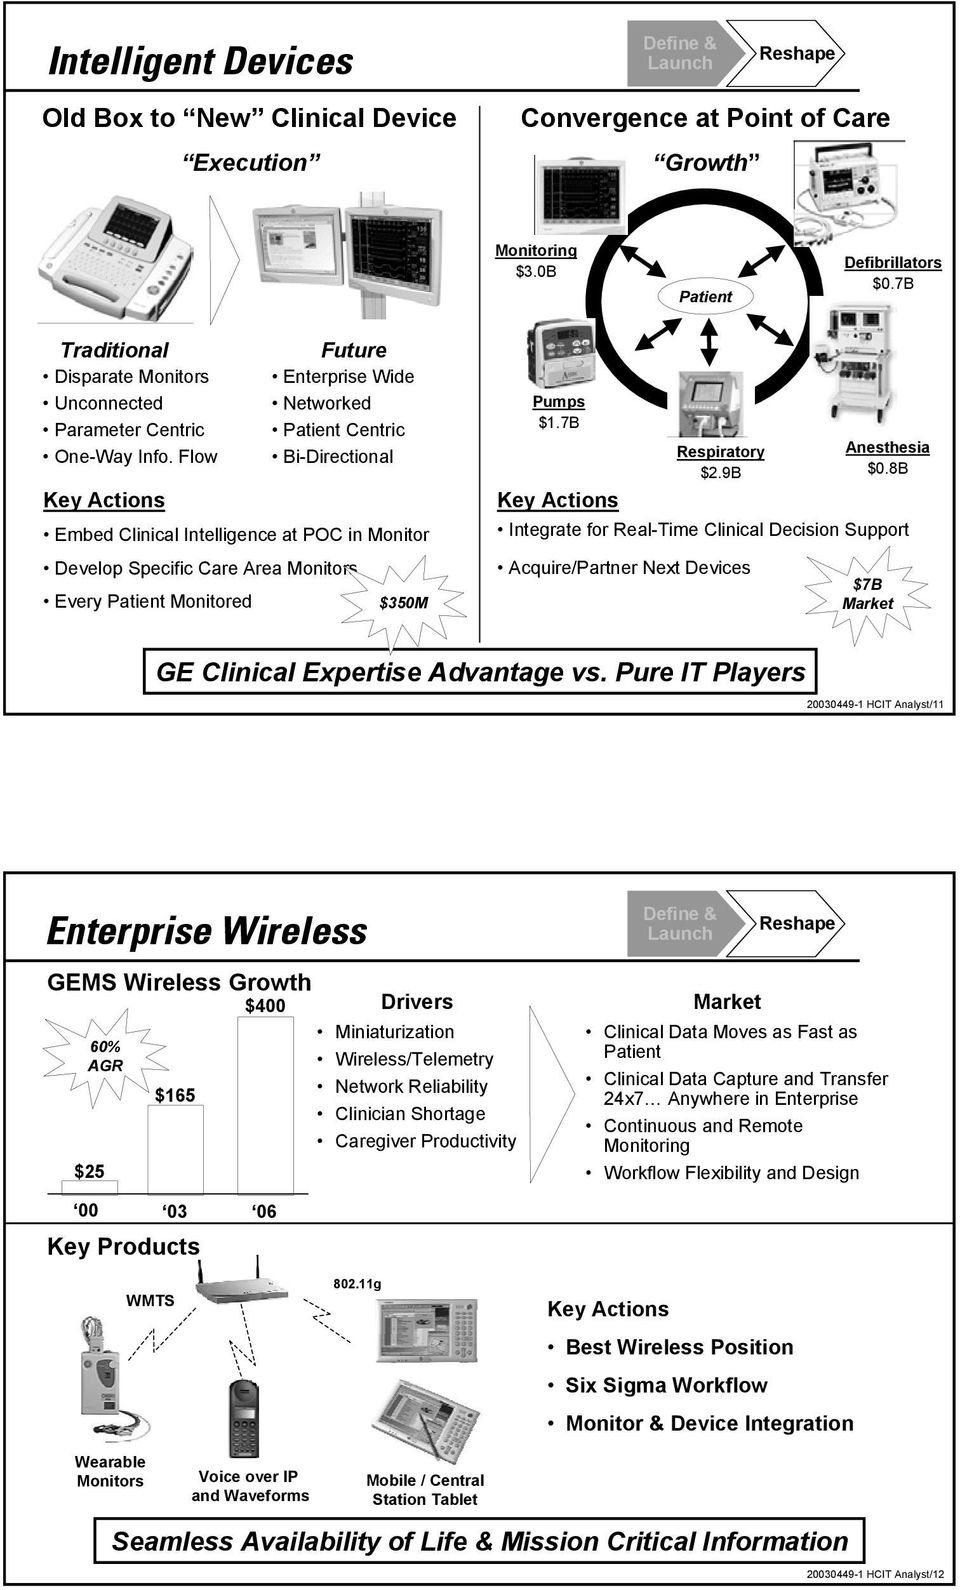 Flow Key Actions Future Enterprise Wide Networked Patient Centric Bi-Directional Embed Clinical Intelligence at POC in Monitor Develop Specific Care Area Monitors Every Patient Monitored $350M Pumps